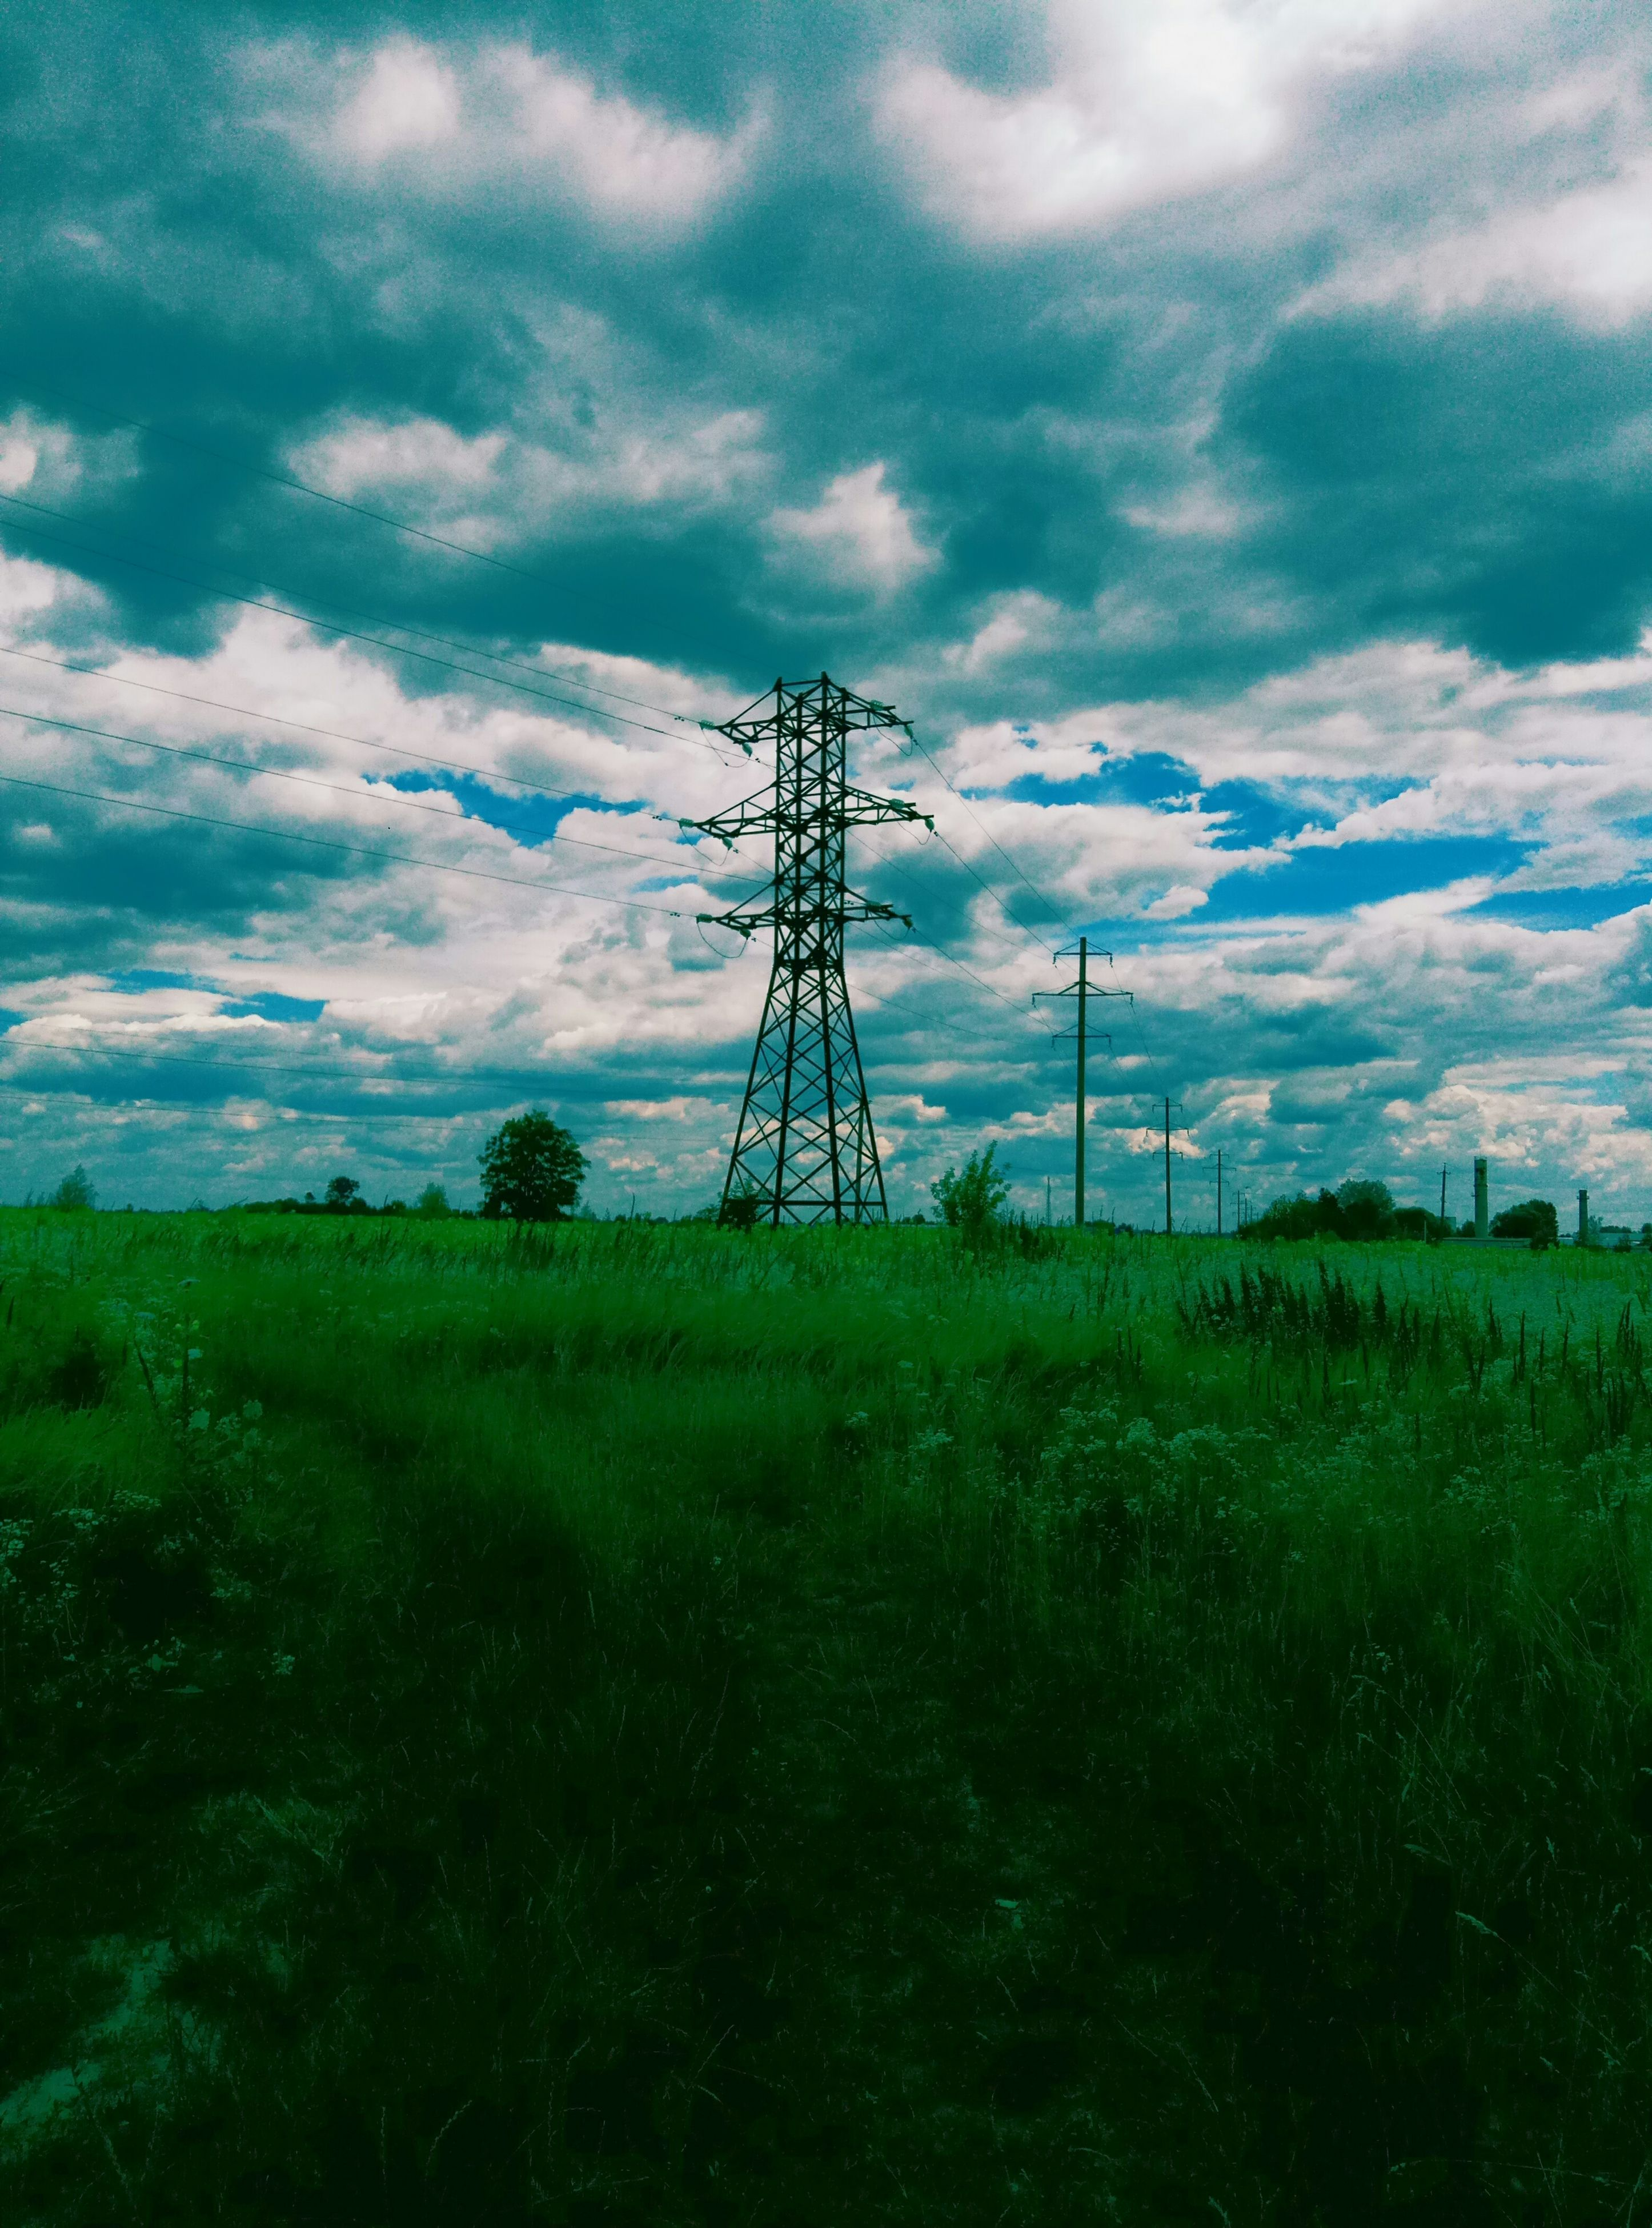 cloud - sky, electricity, sky, grass, field, connection, electricity pylon, fuel and power generation, landscape, technology, cable, no people, nature, growth, tree, day, outdoors